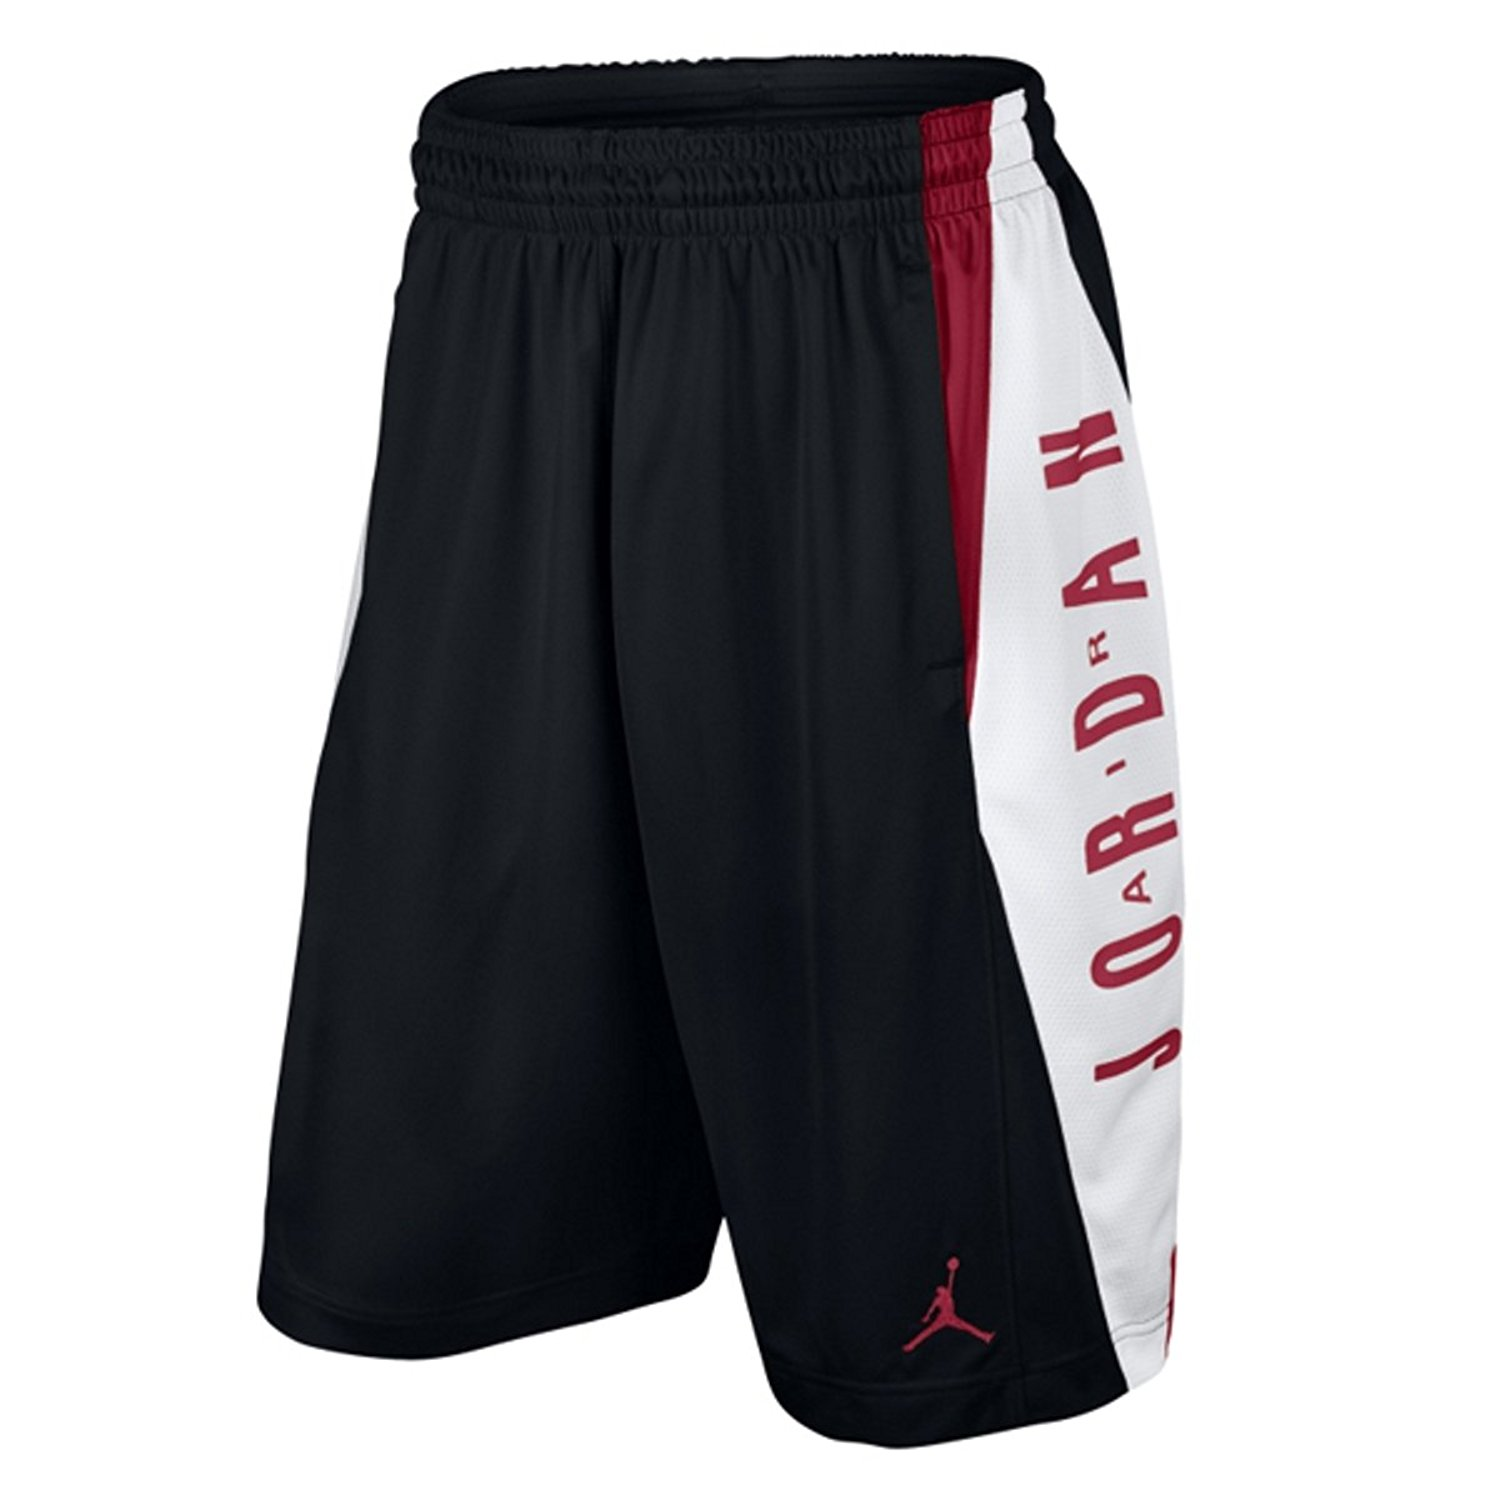 6406cfc3cb3 Get Quotations · Nike Jordan Takeover Shorts Mens Black/Gym Red/White  724831-011